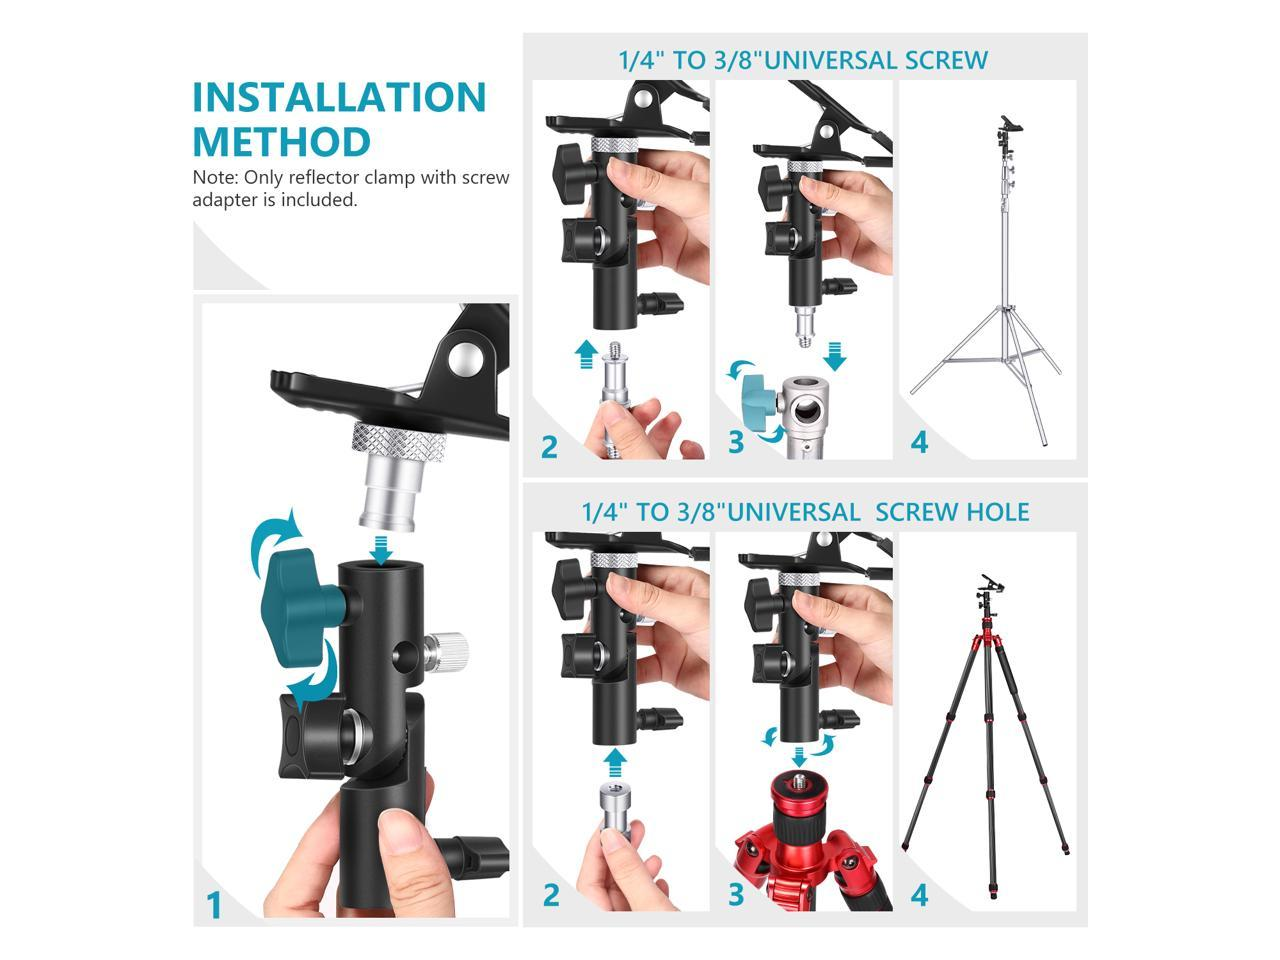 Light Stand Bracket Mount LED Light Neewer Photo Studio Reflector Holder Metal Clamp Holder with 1//4 inch-3//8 inch Tilt Screw Adapter and Umbrella Hole for Reflector Studio Flash Umbrella